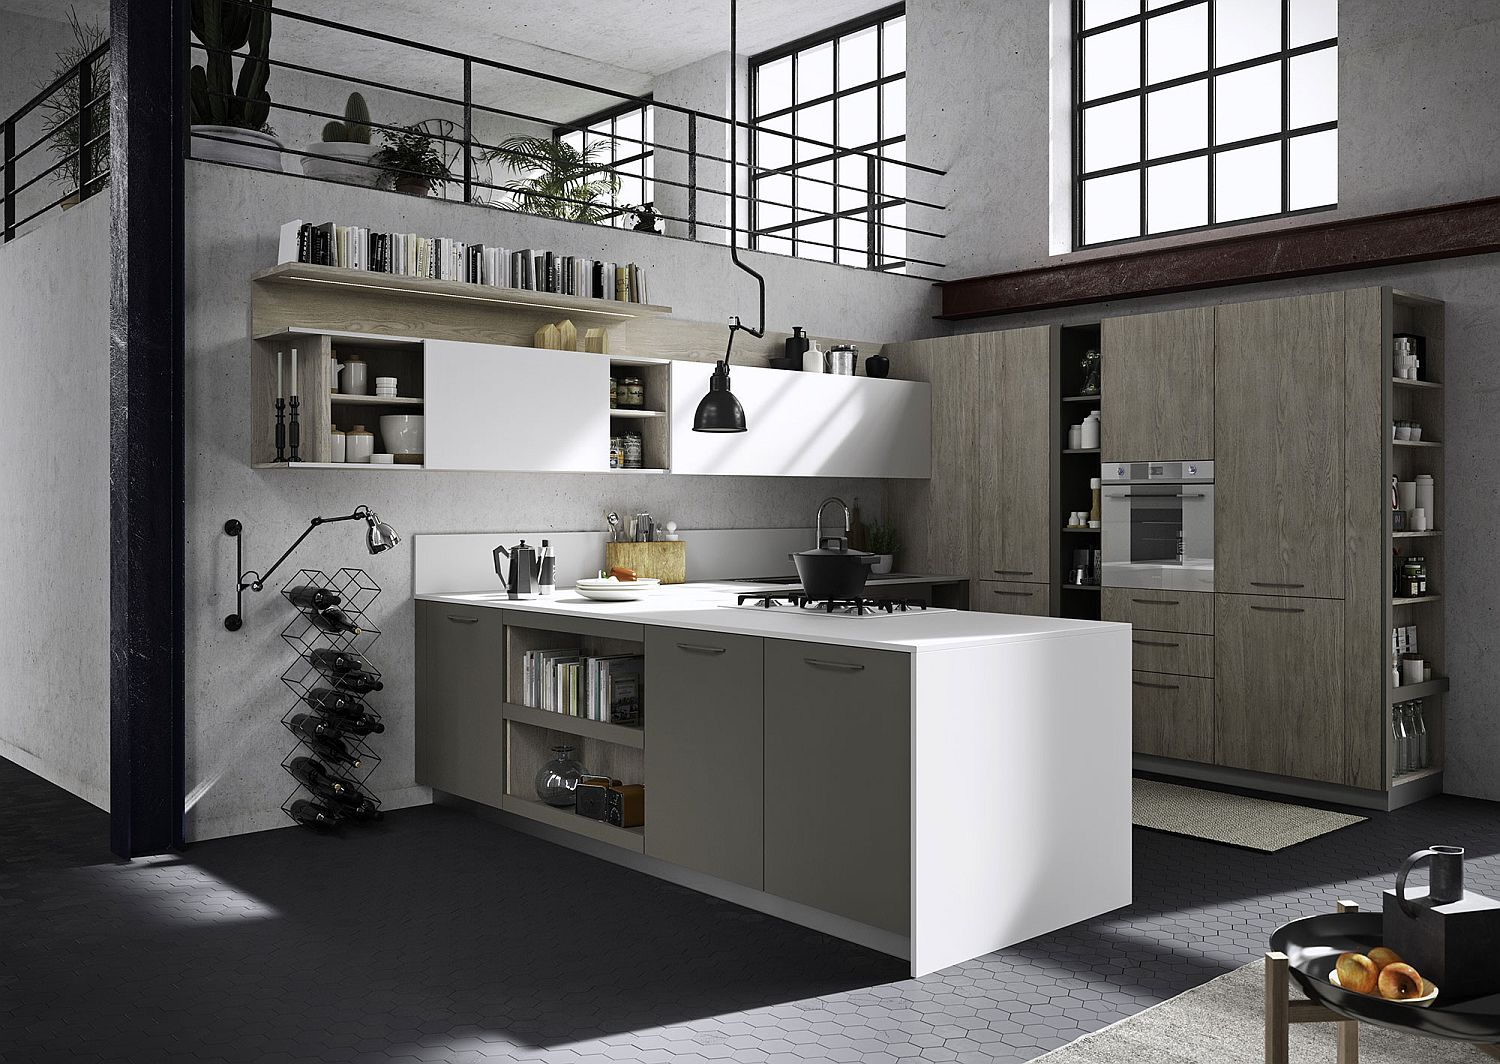 Definite-modular-structure-gives-the-Fun-kitchen-a-cool-modern-look Adaptable Kitchen by Snaidero